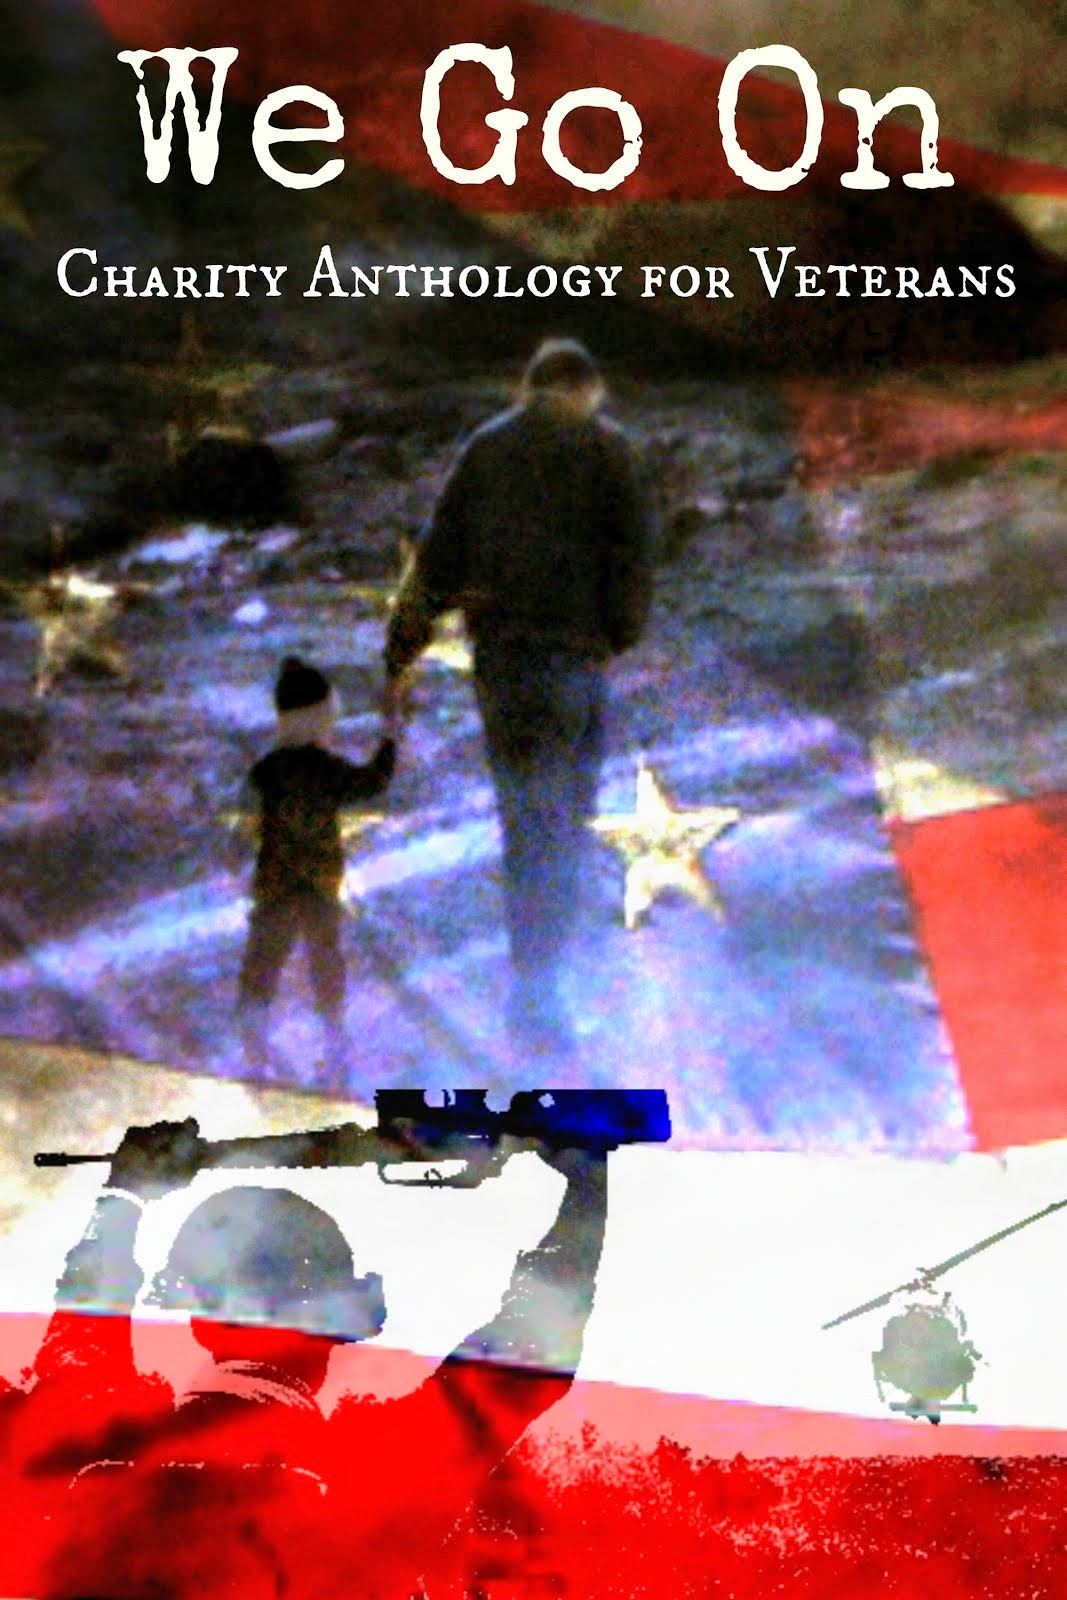 100% of Proceeds go to Veteran's Charities